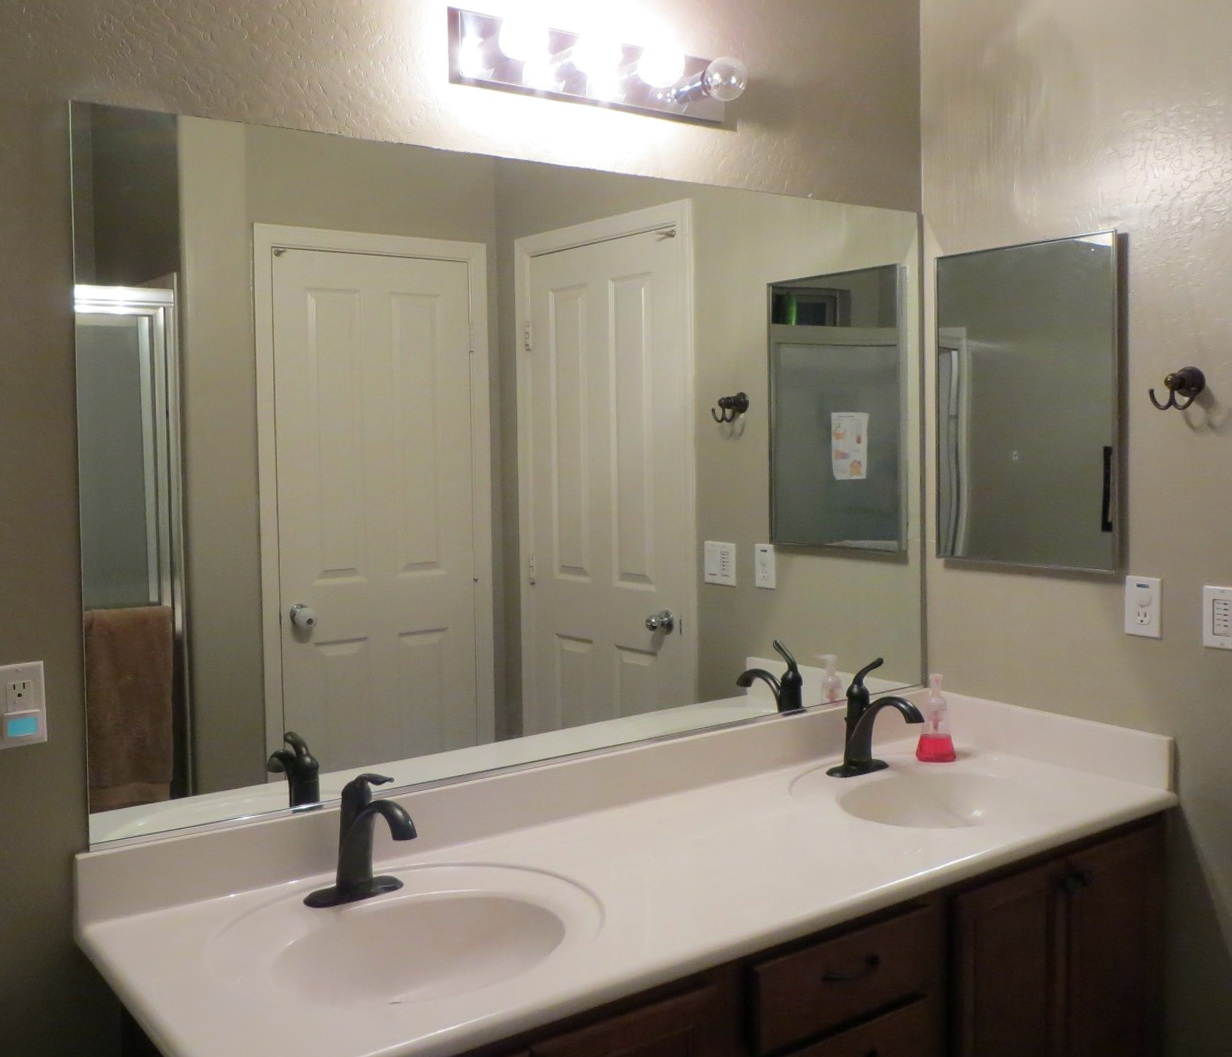 Bathroom mirror frames do it yourself home design ideas Frames for bathroom wall mirrors